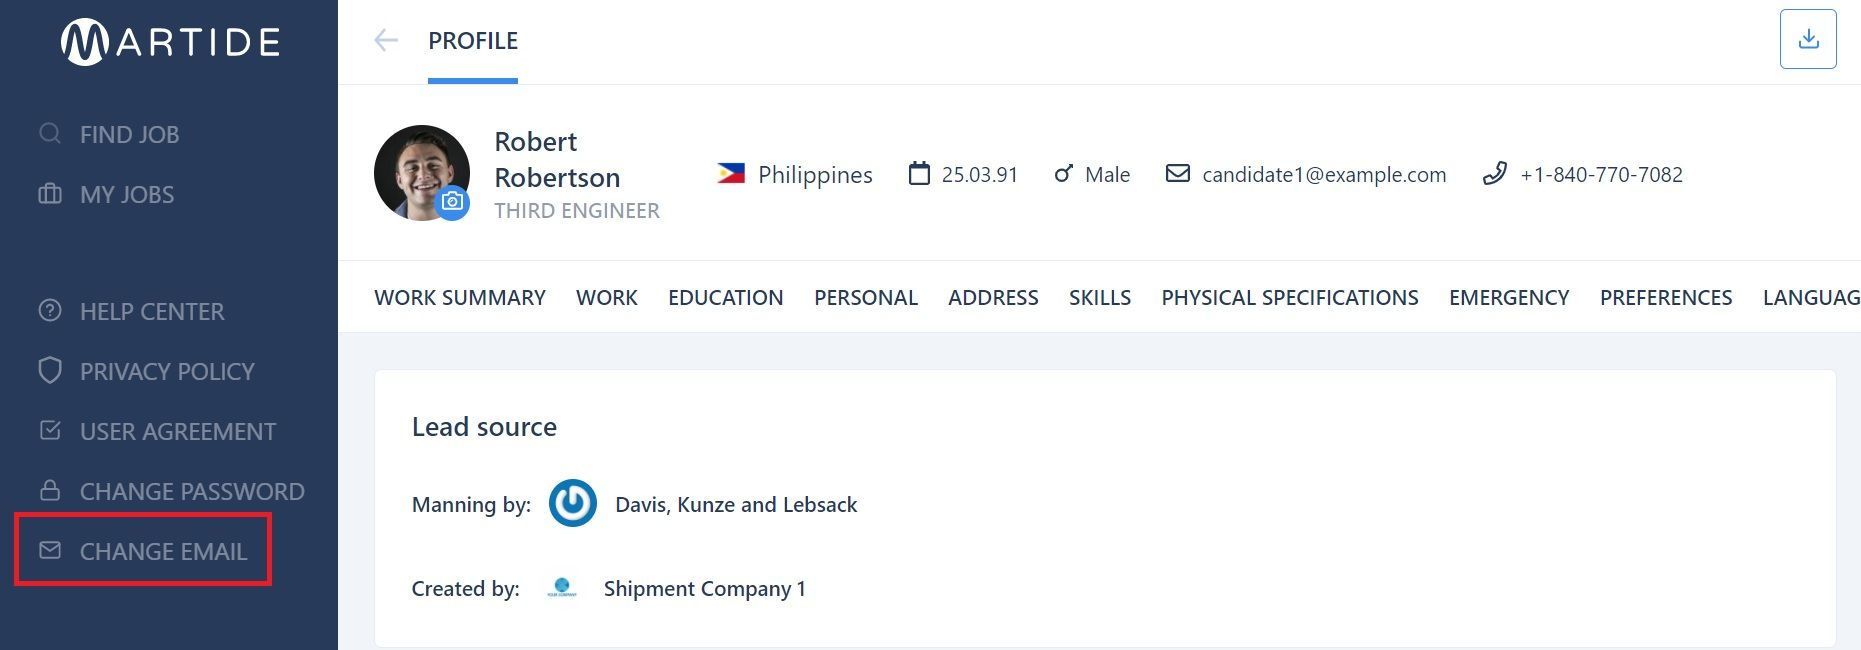 screenshot of the Martide website showing a seafarer's profile page